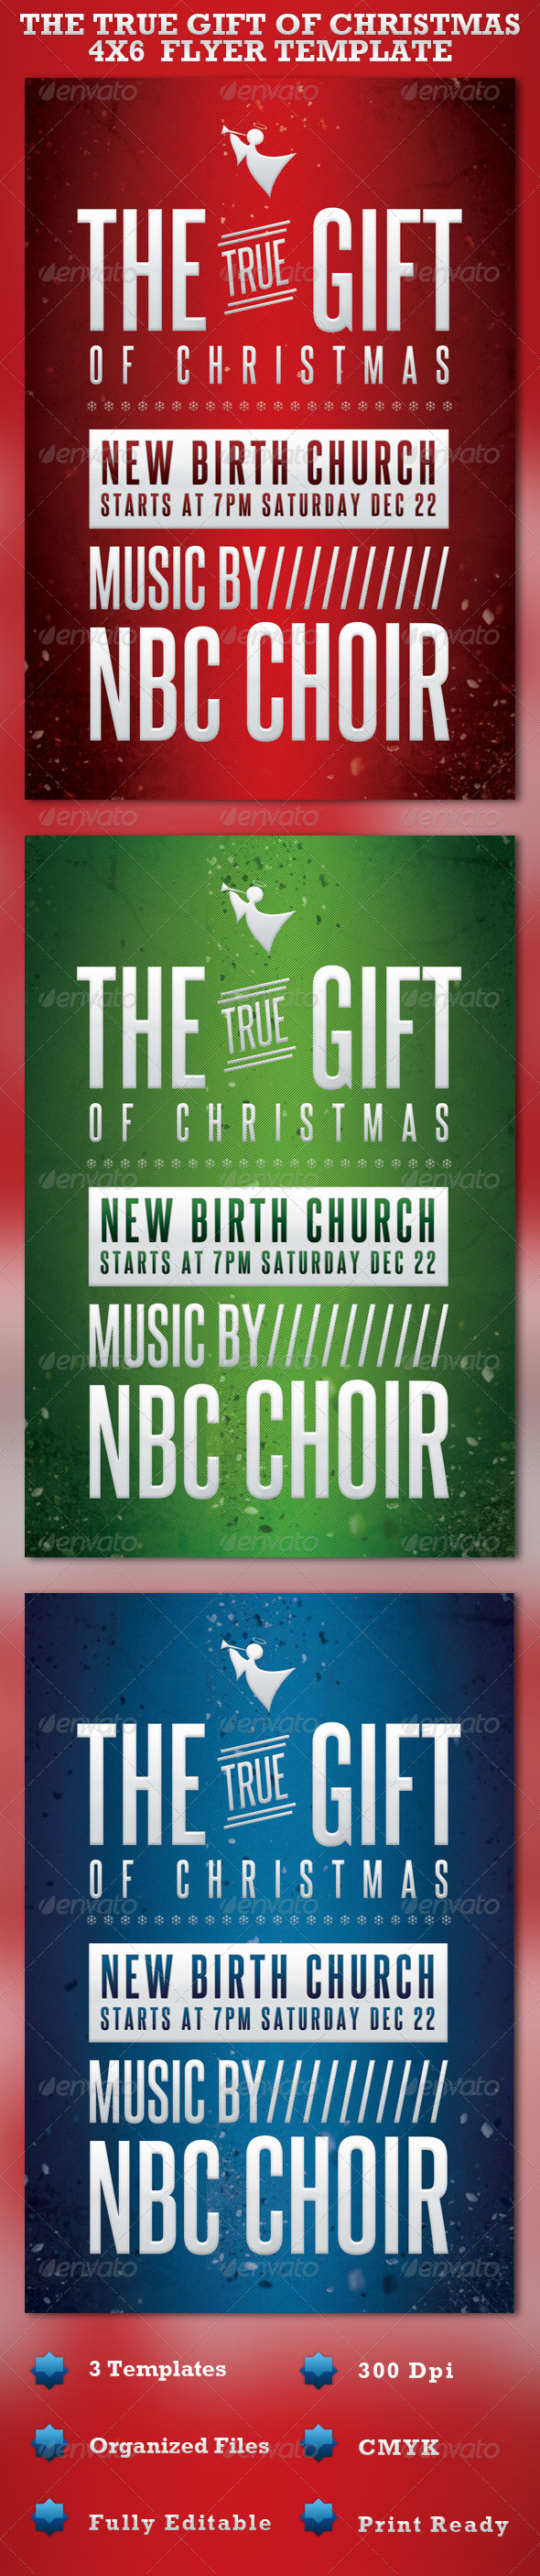 Christmas Event Flyer Graphics Designs Templates